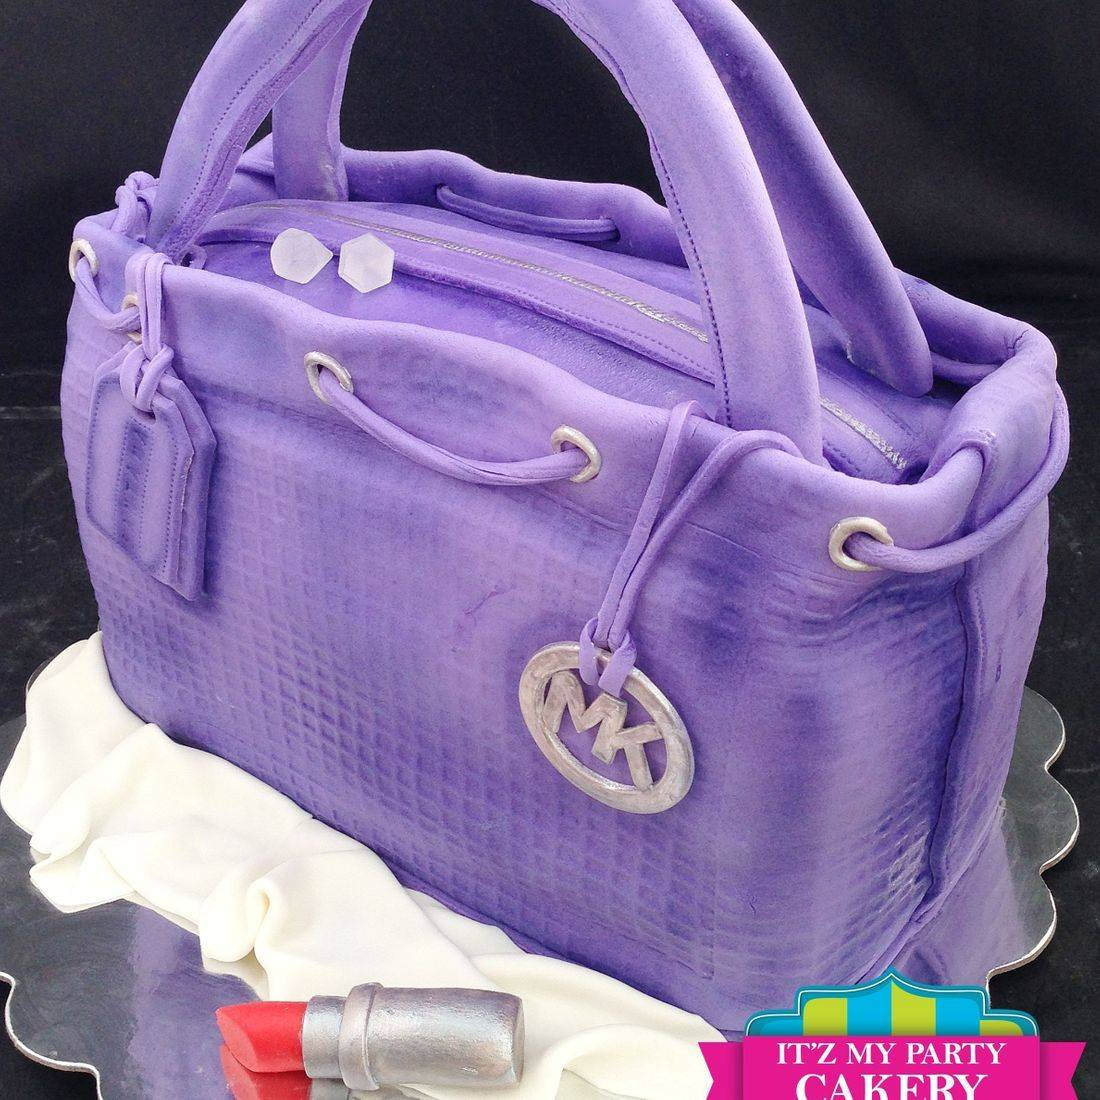 Purse MK Carved Dimensional Cake Milwaukee